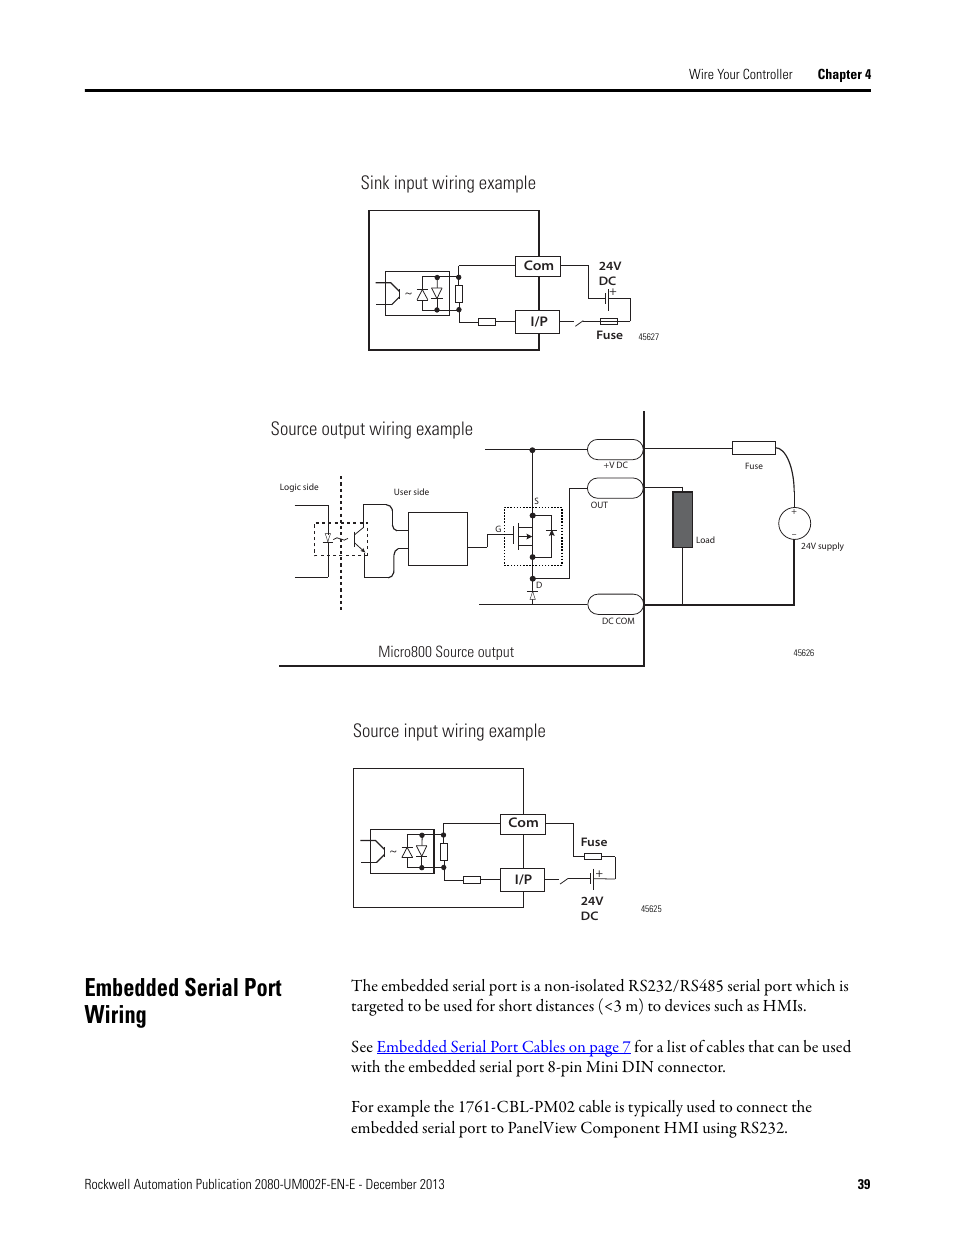 Embedded serial port wiring, Sink input wiring example ... on